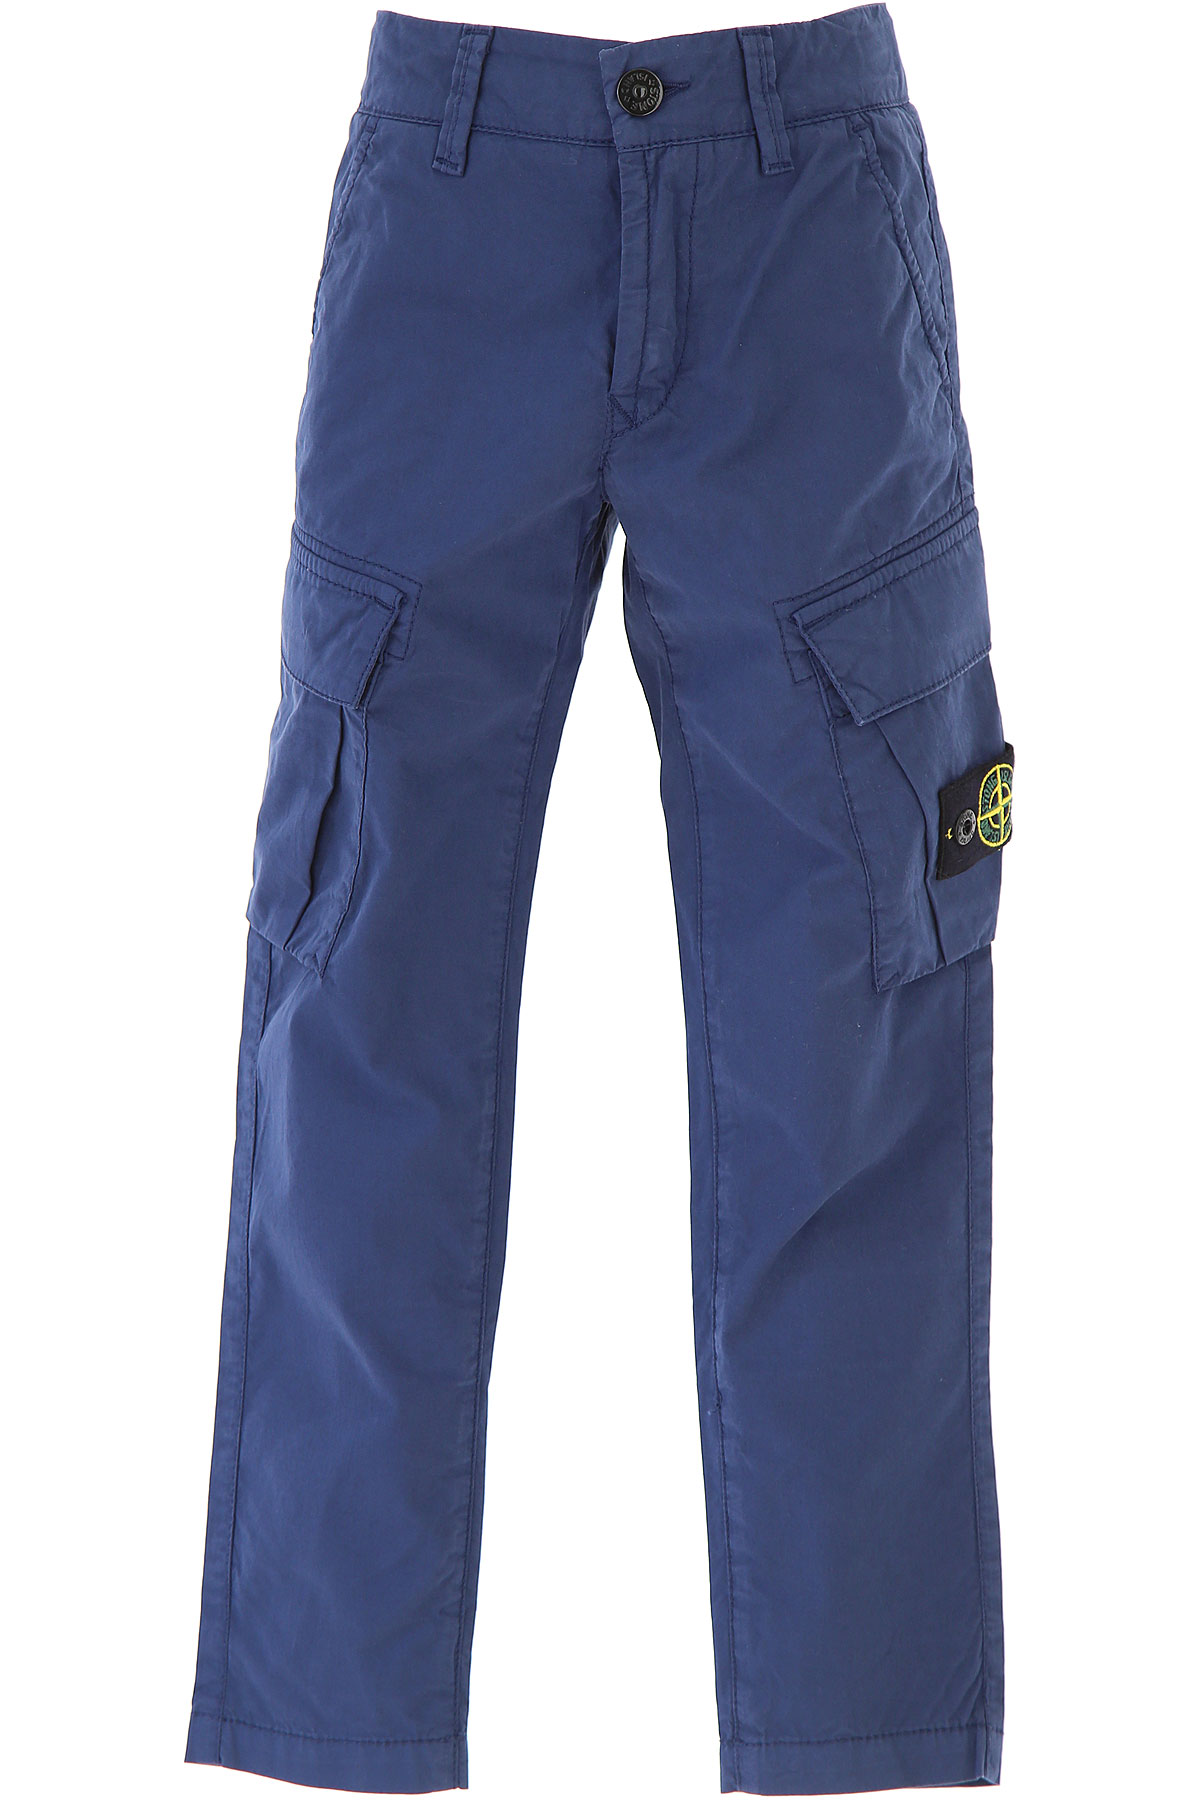 Stone Island Kids Pants for Boys On Sale in Outlet, Blue, Cotton, 2019, 2Y 3Y 4Y 5Y